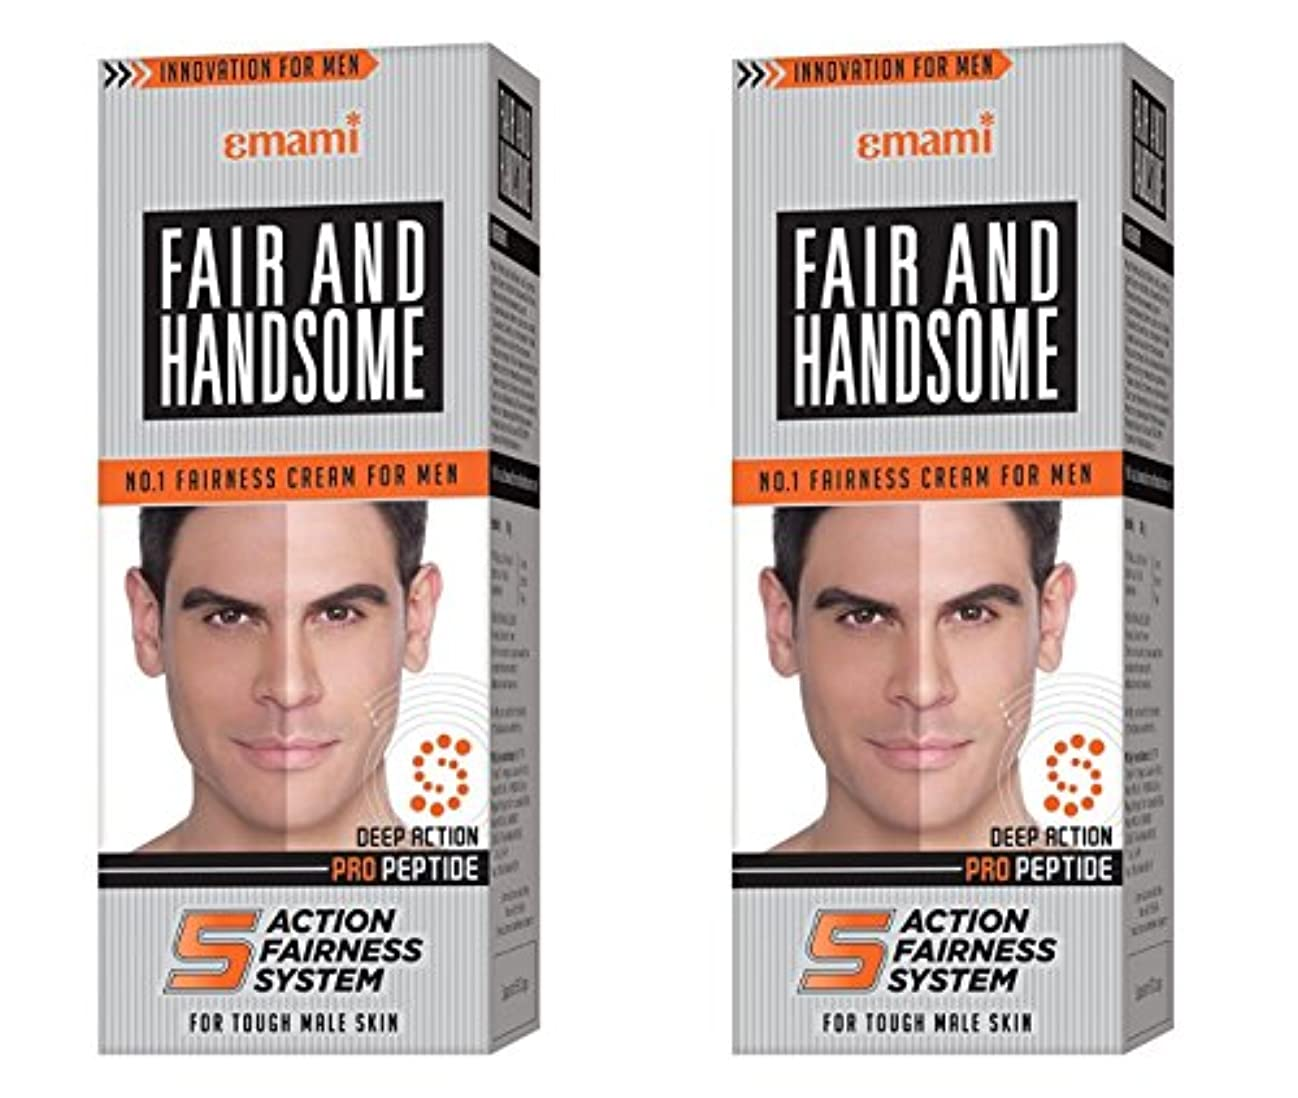 調整スーパー女優Fair and Handsome Fairness Cream for Men, 60gm (Pack of 2)